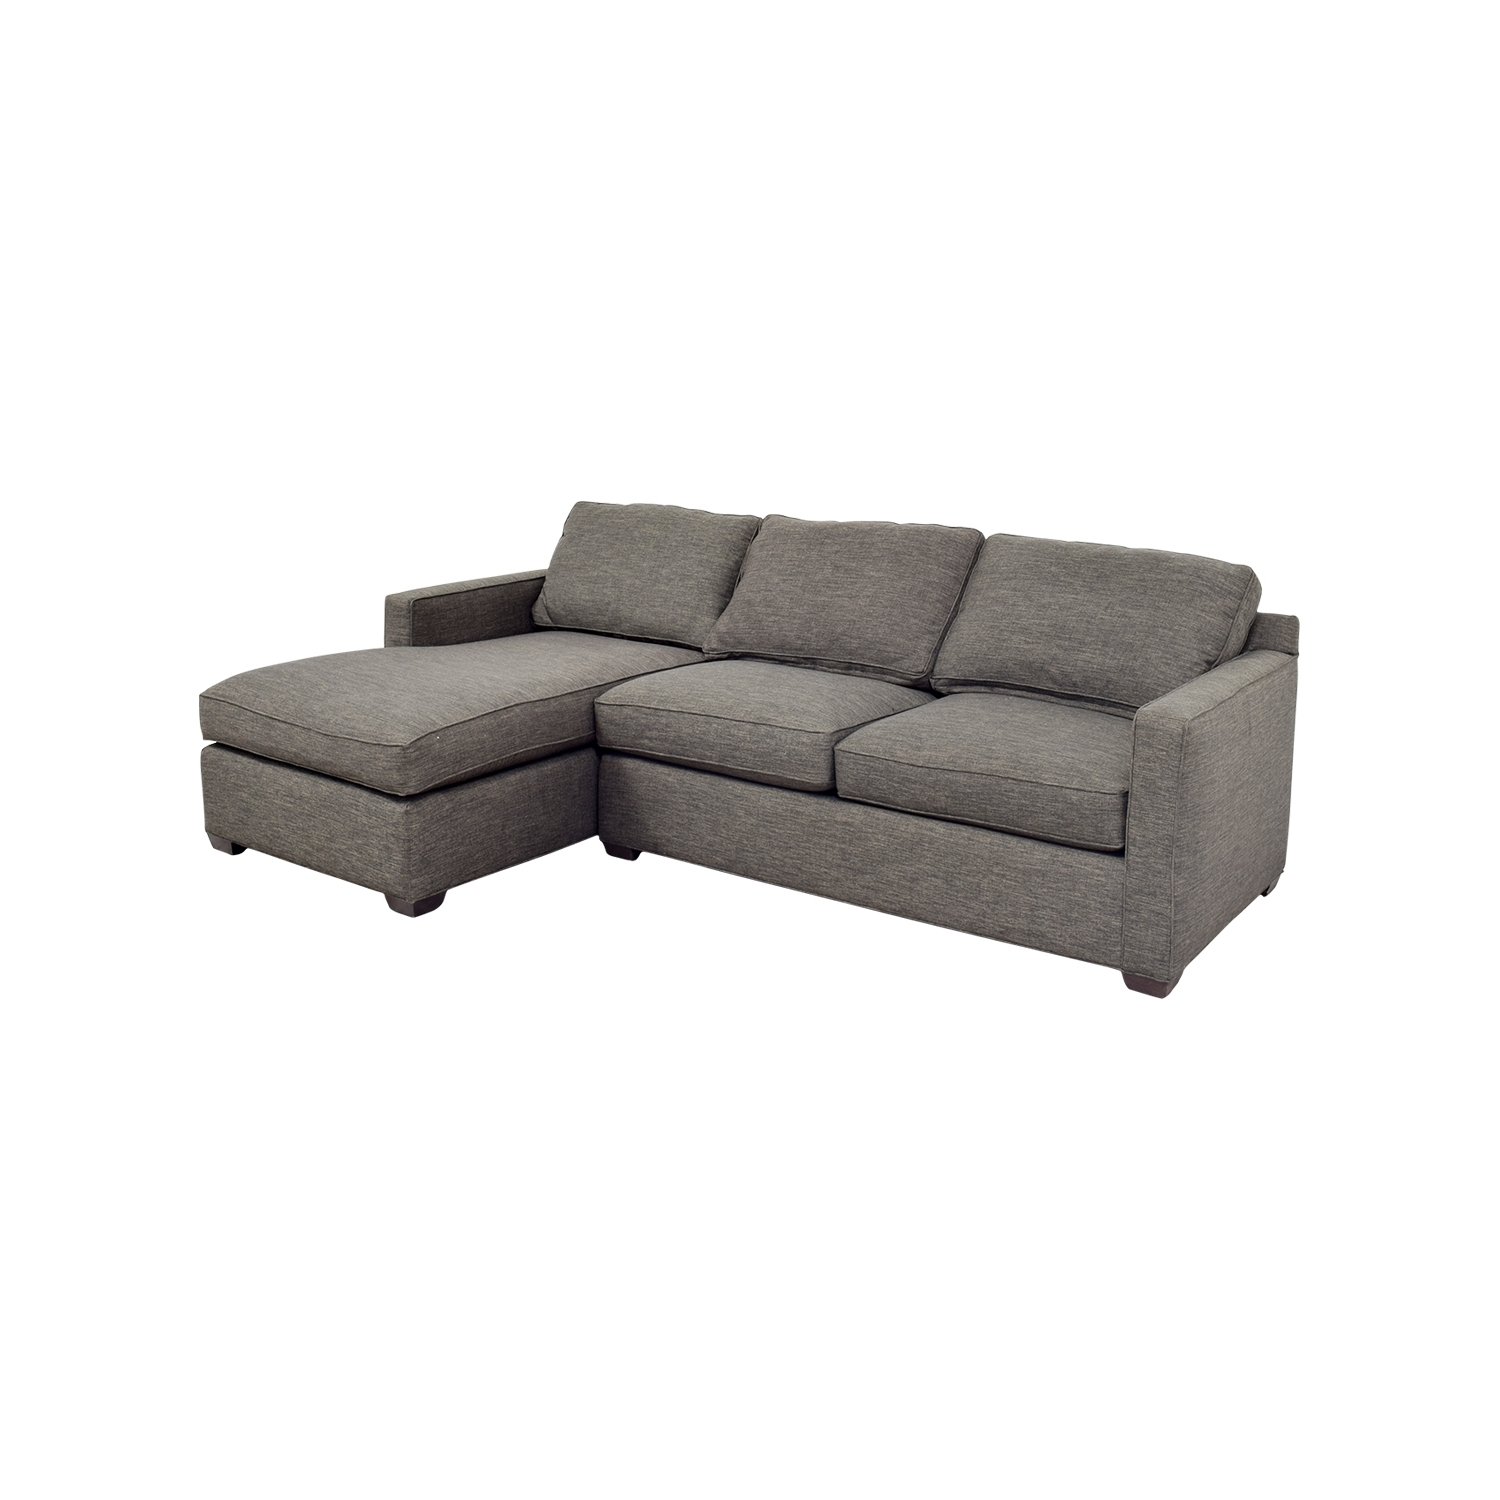 [%63% Off – Crate And Barrel Crate & Barrel Davis Grey Chaise Throughout 2017 Grey Chaise Sofas|Grey Chaise Sofas With Most Recently Released 63% Off – Crate And Barrel Crate & Barrel Davis Grey Chaise|Current Grey Chaise Sofas With Regard To 63% Off – Crate And Barrel Crate & Barrel Davis Grey Chaise|Preferred 63% Off – Crate And Barrel Crate & Barrel Davis Grey Chaise Within Grey Chaise Sofas%] (View 1 of 15)